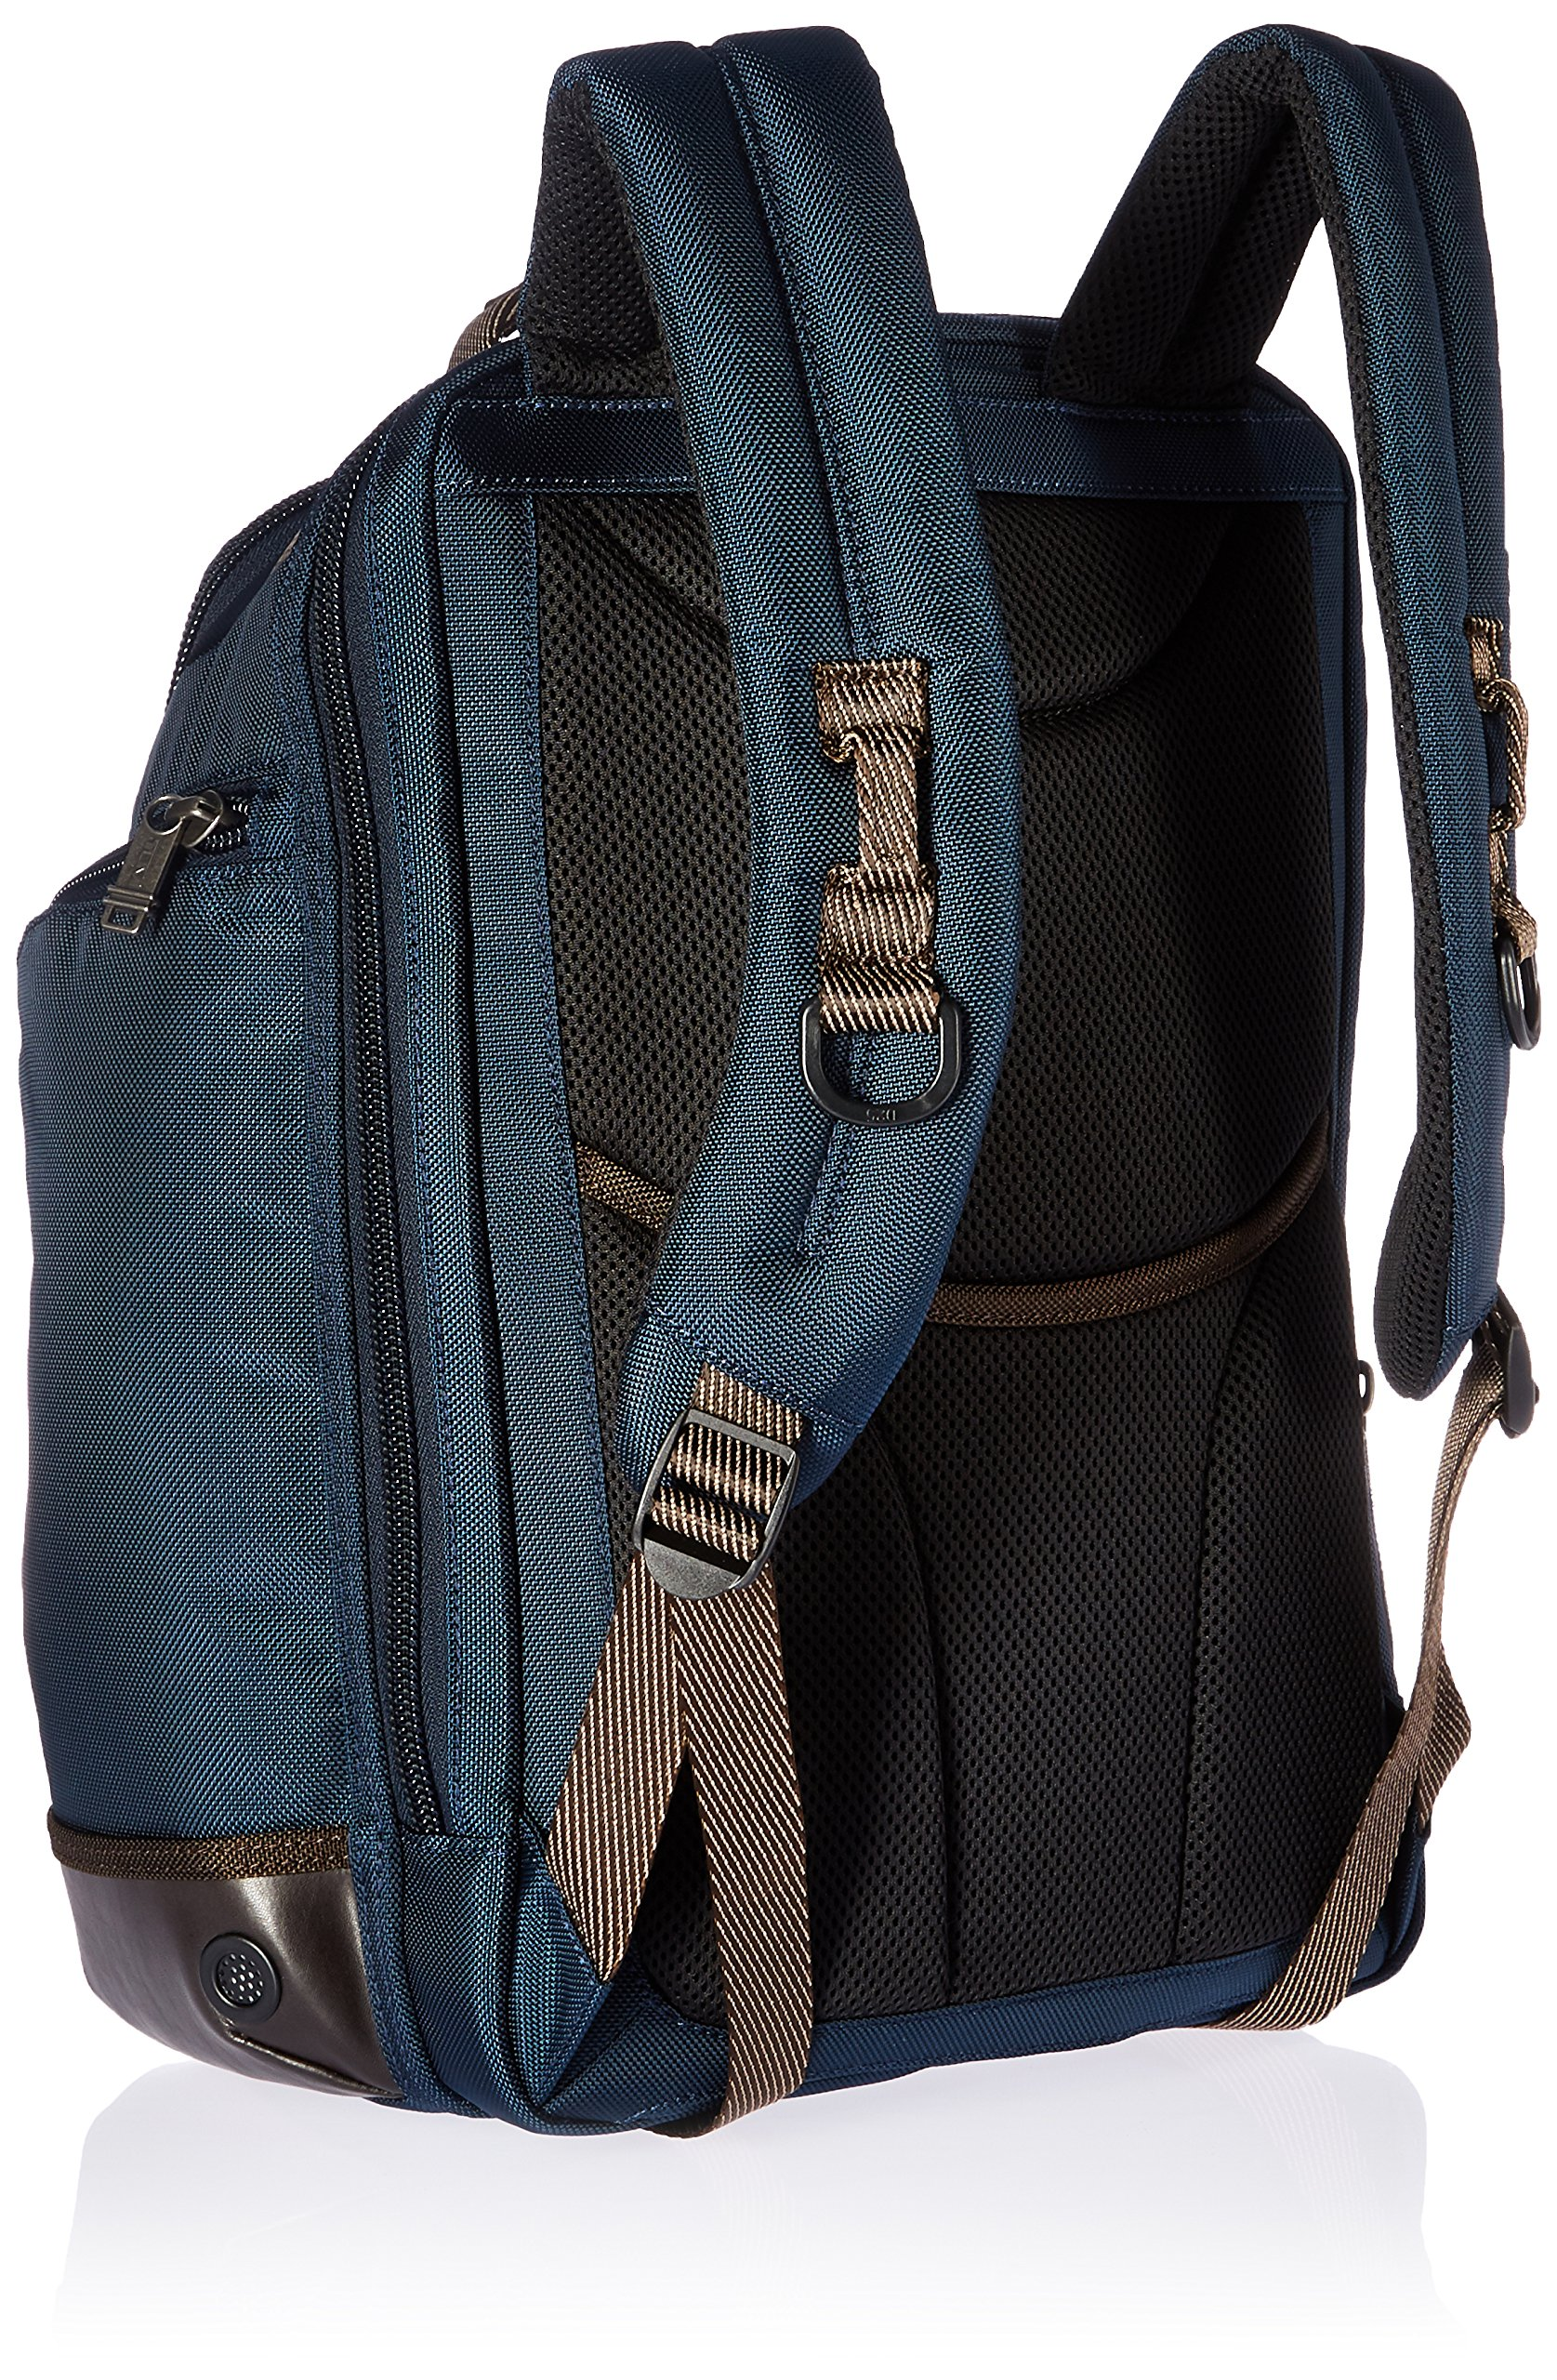 Tumi Alpha Bravo Shaw Deluxe Brief Pack, Navy by Tumi (Image #2)